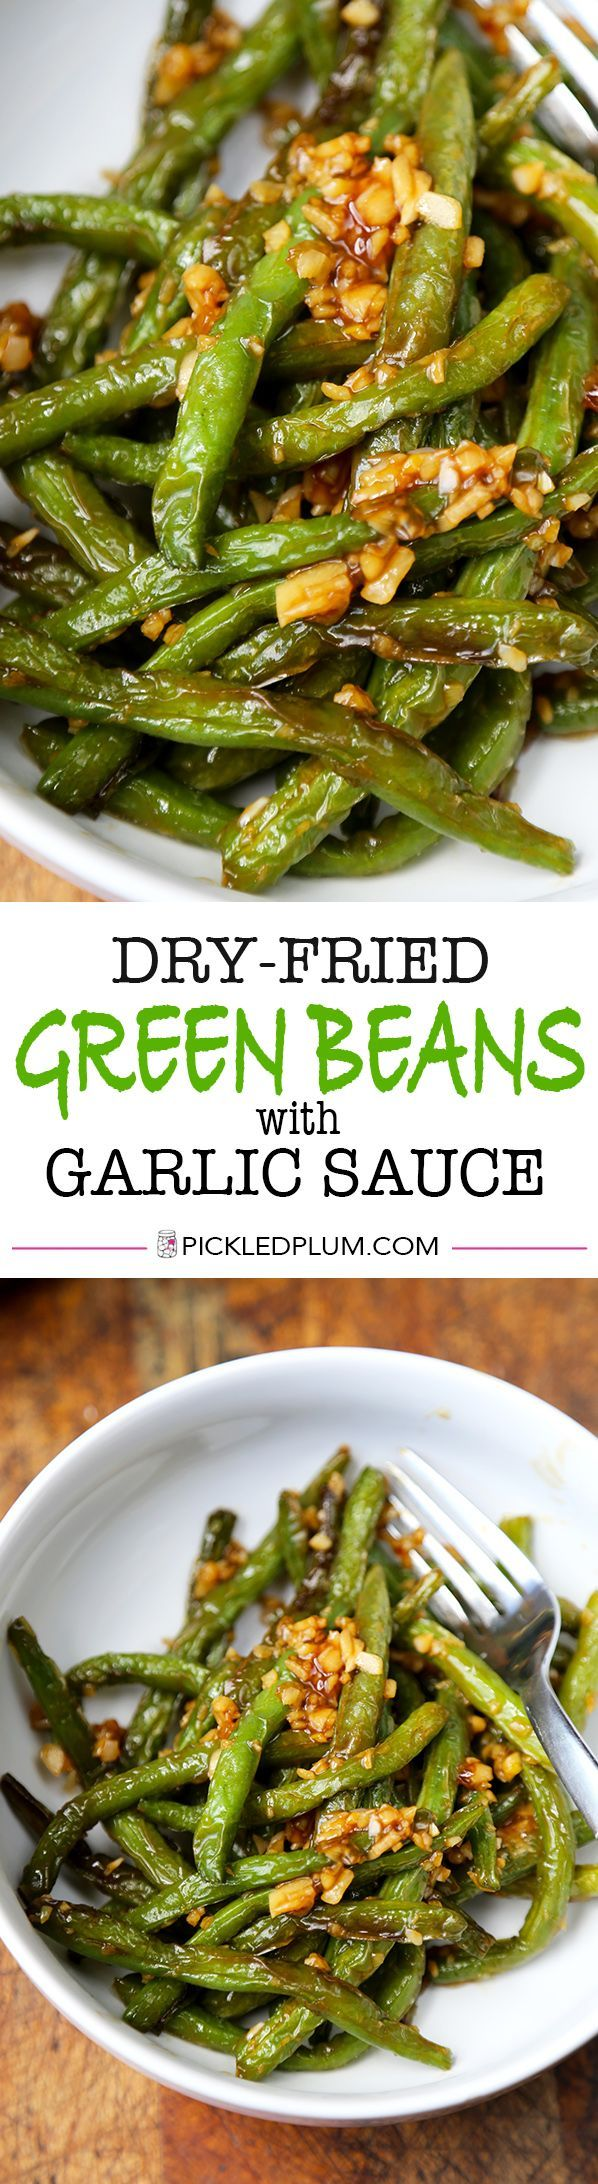 The easiest and tastiest Dry-Fried Green Beans with Garlic Sauce Recipe! Vegetarian and Vegan. Only 10 minutes to make from start to finish.